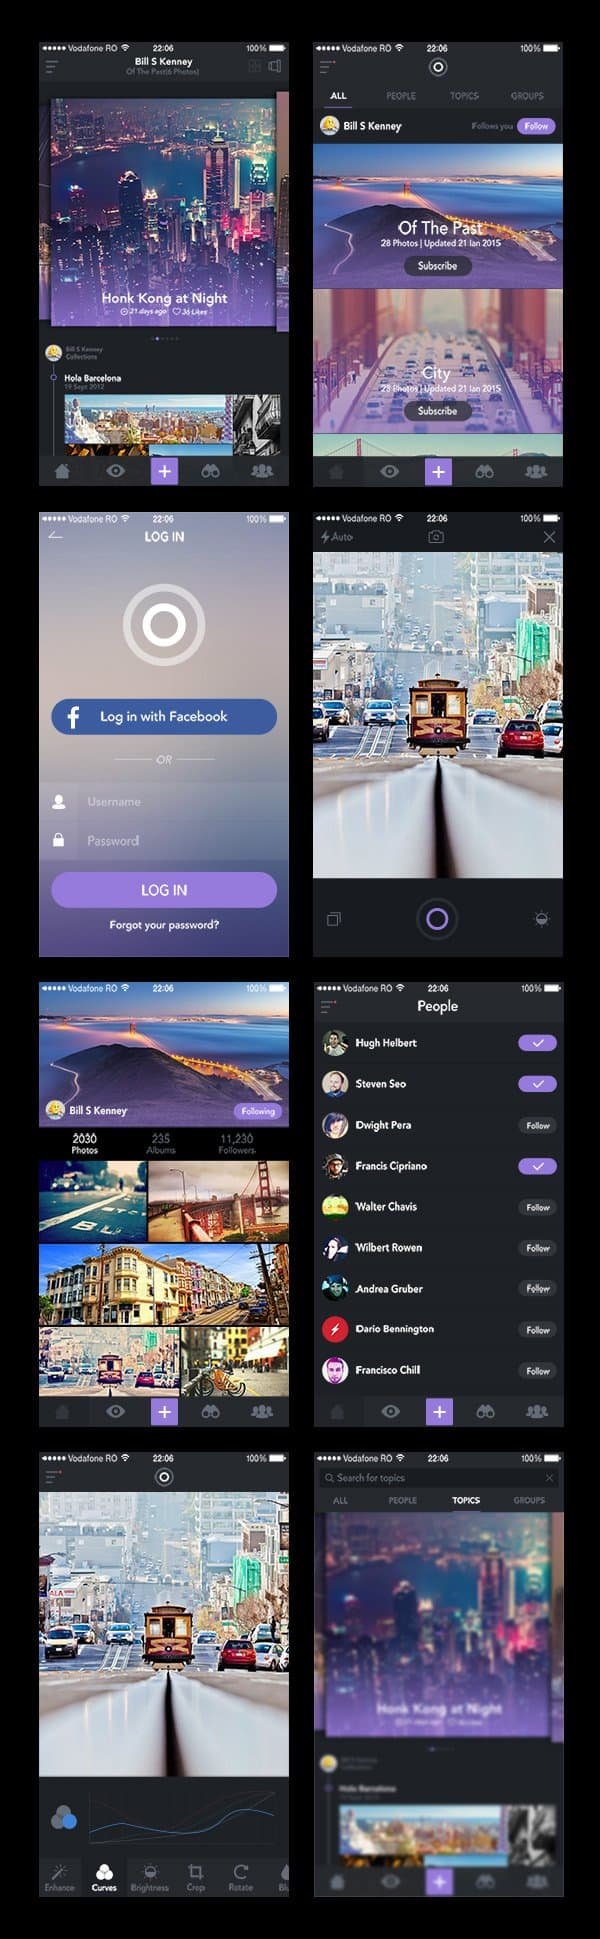 Photo Sharing App UI PSD Design Templates